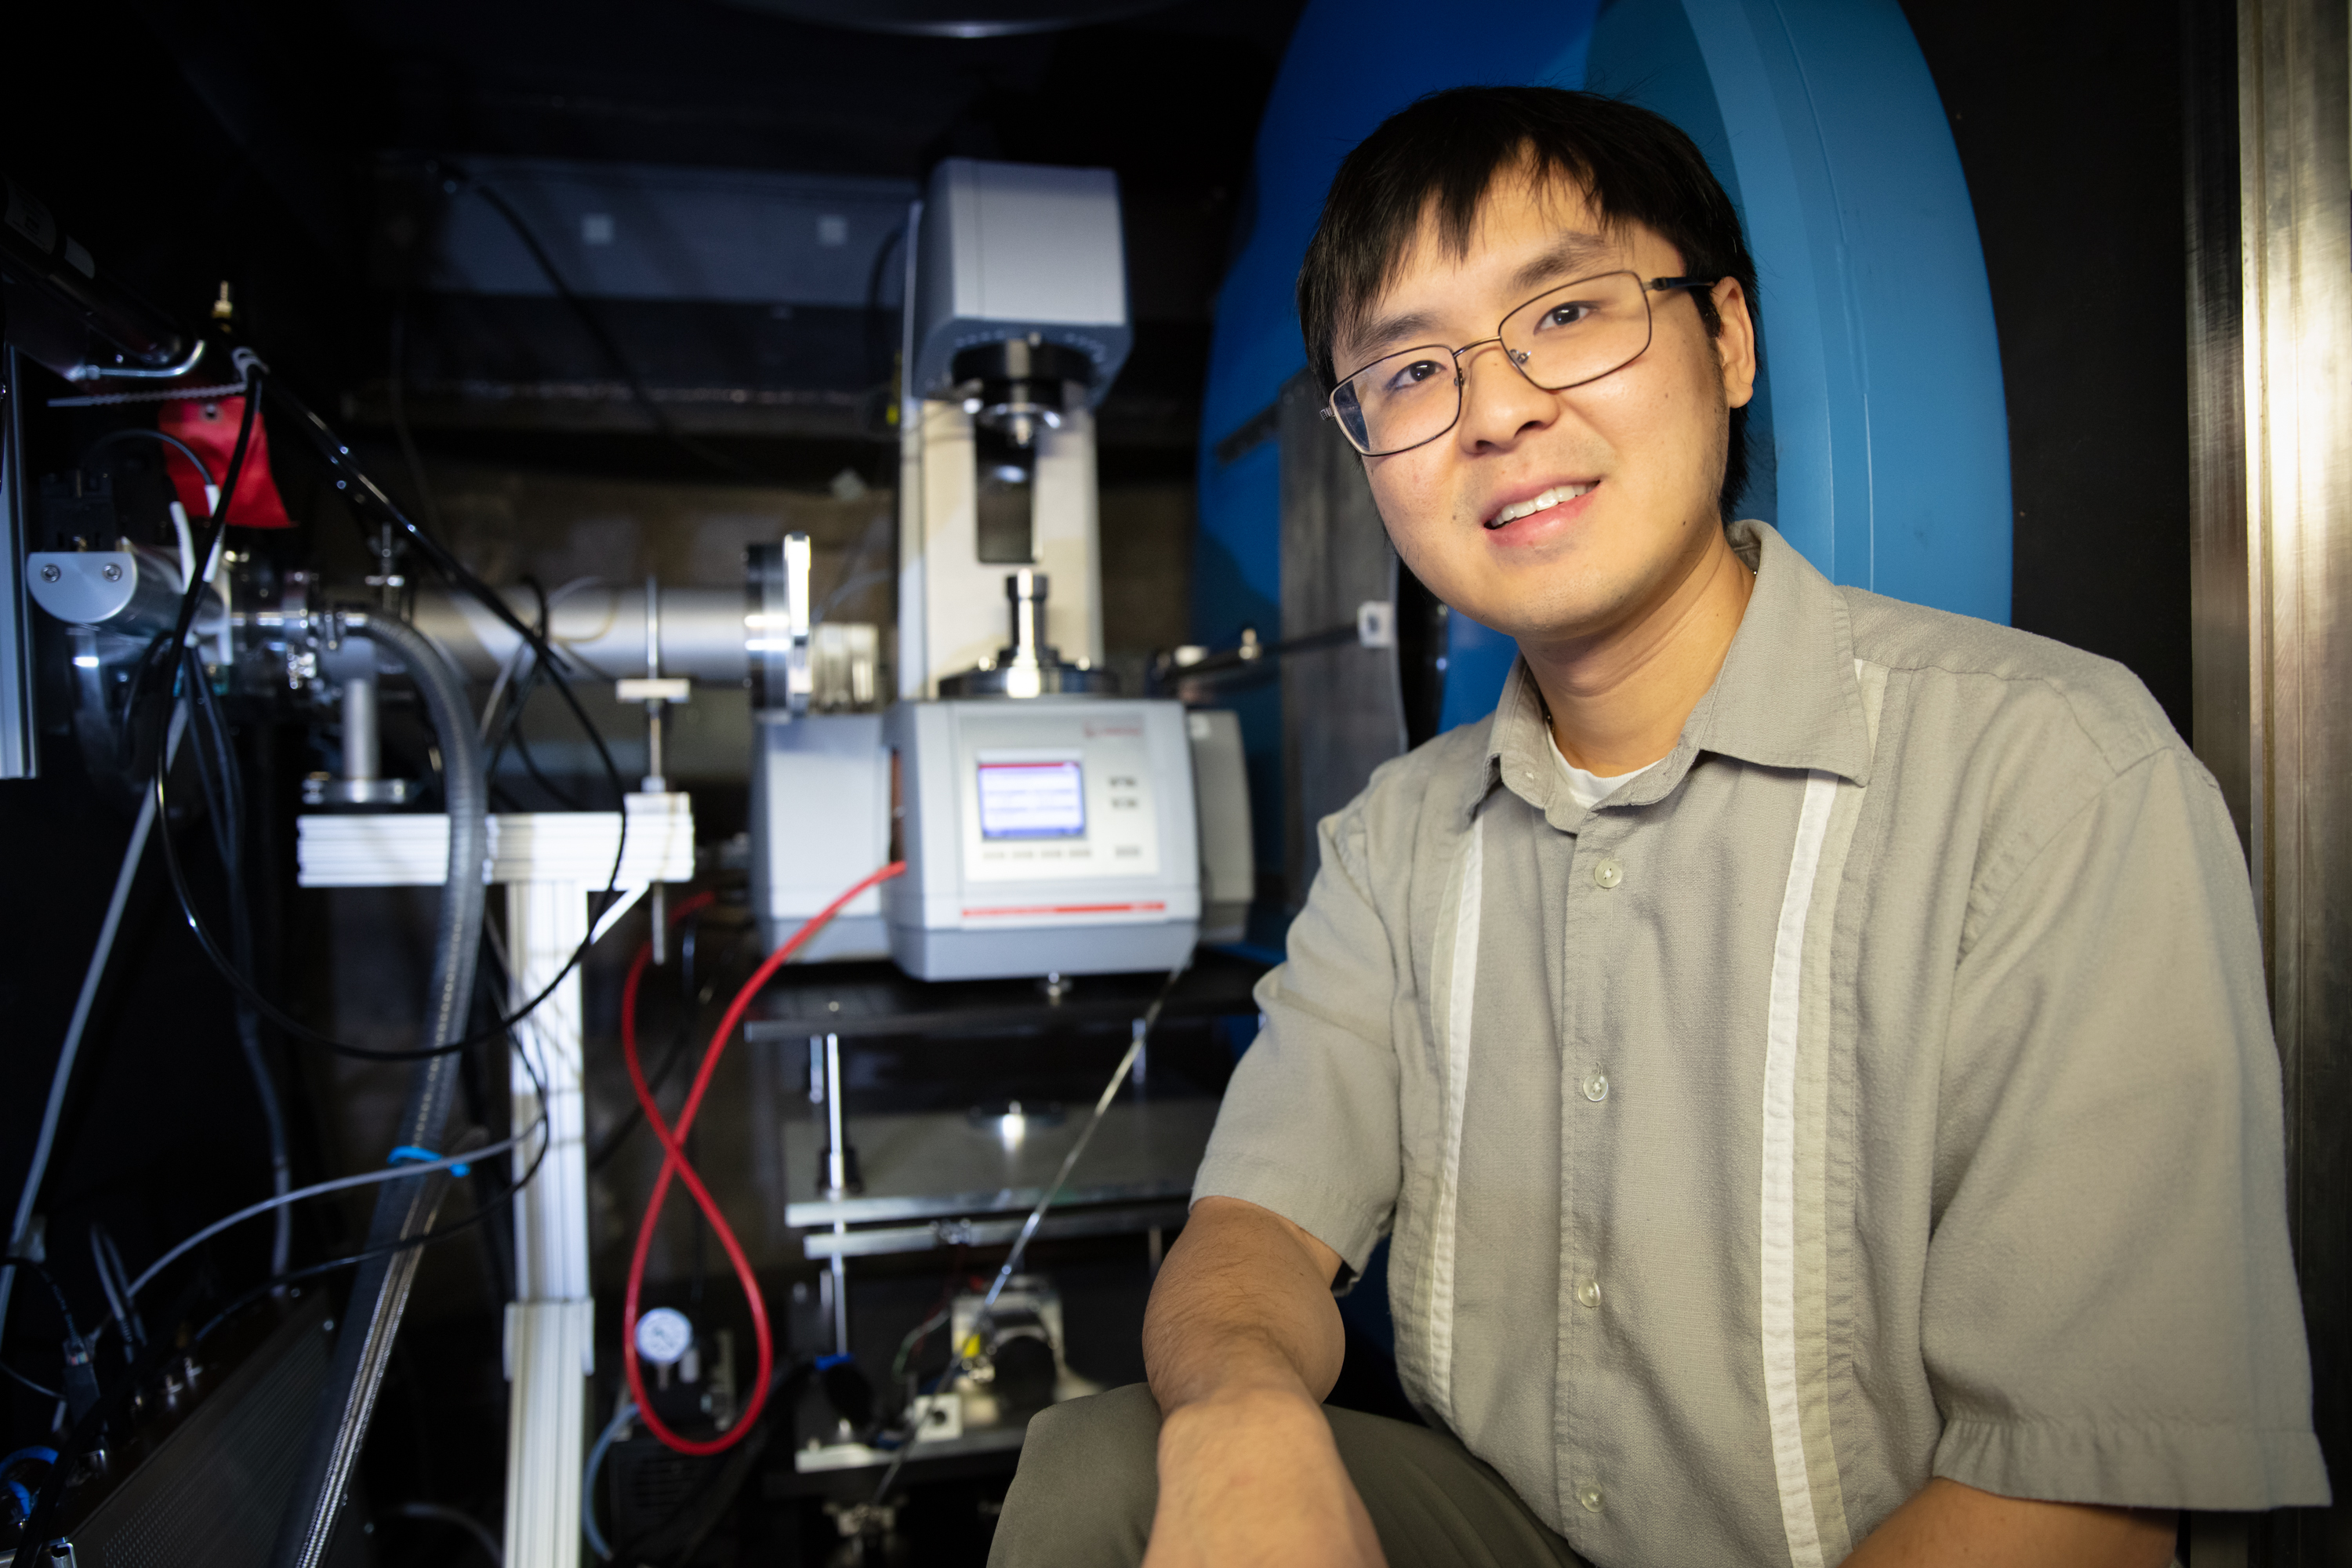 The rheo-SANS environment allowed ORNL's Christopher Lam to investigate the response properties of polymer gels at the EQ-SANS beamline at the Spallation Neutron Source. (Credit: ORNL/Genevieve Martin)